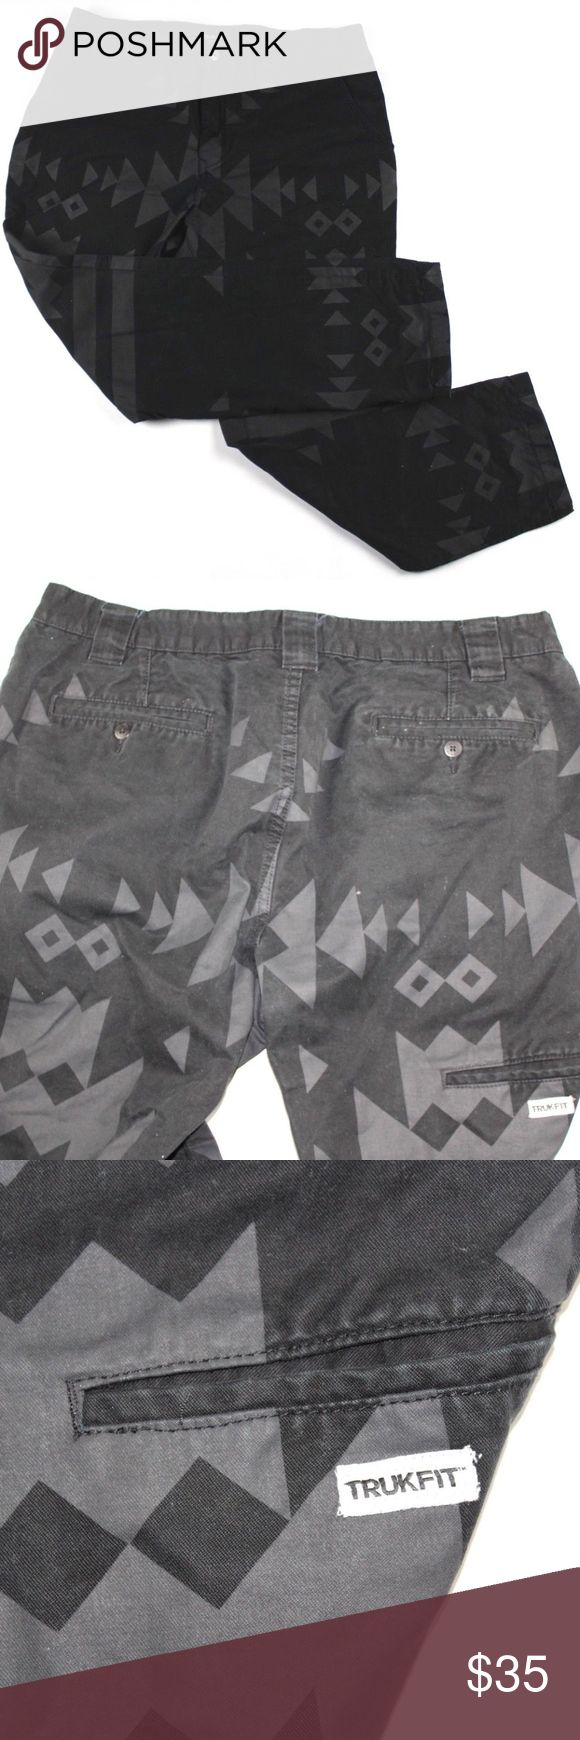 Trukfit Size 40x31 Tribal Print Geometric Pants Trukfit Tribal Geometric Print Pants  Excellent jeans  Comes from a smoke-free household  Black Tribal Print  The size is 40x31  Cotton  Check out my other items for sale in my store!  H88 Trukfit Pants Chinos & Khakis